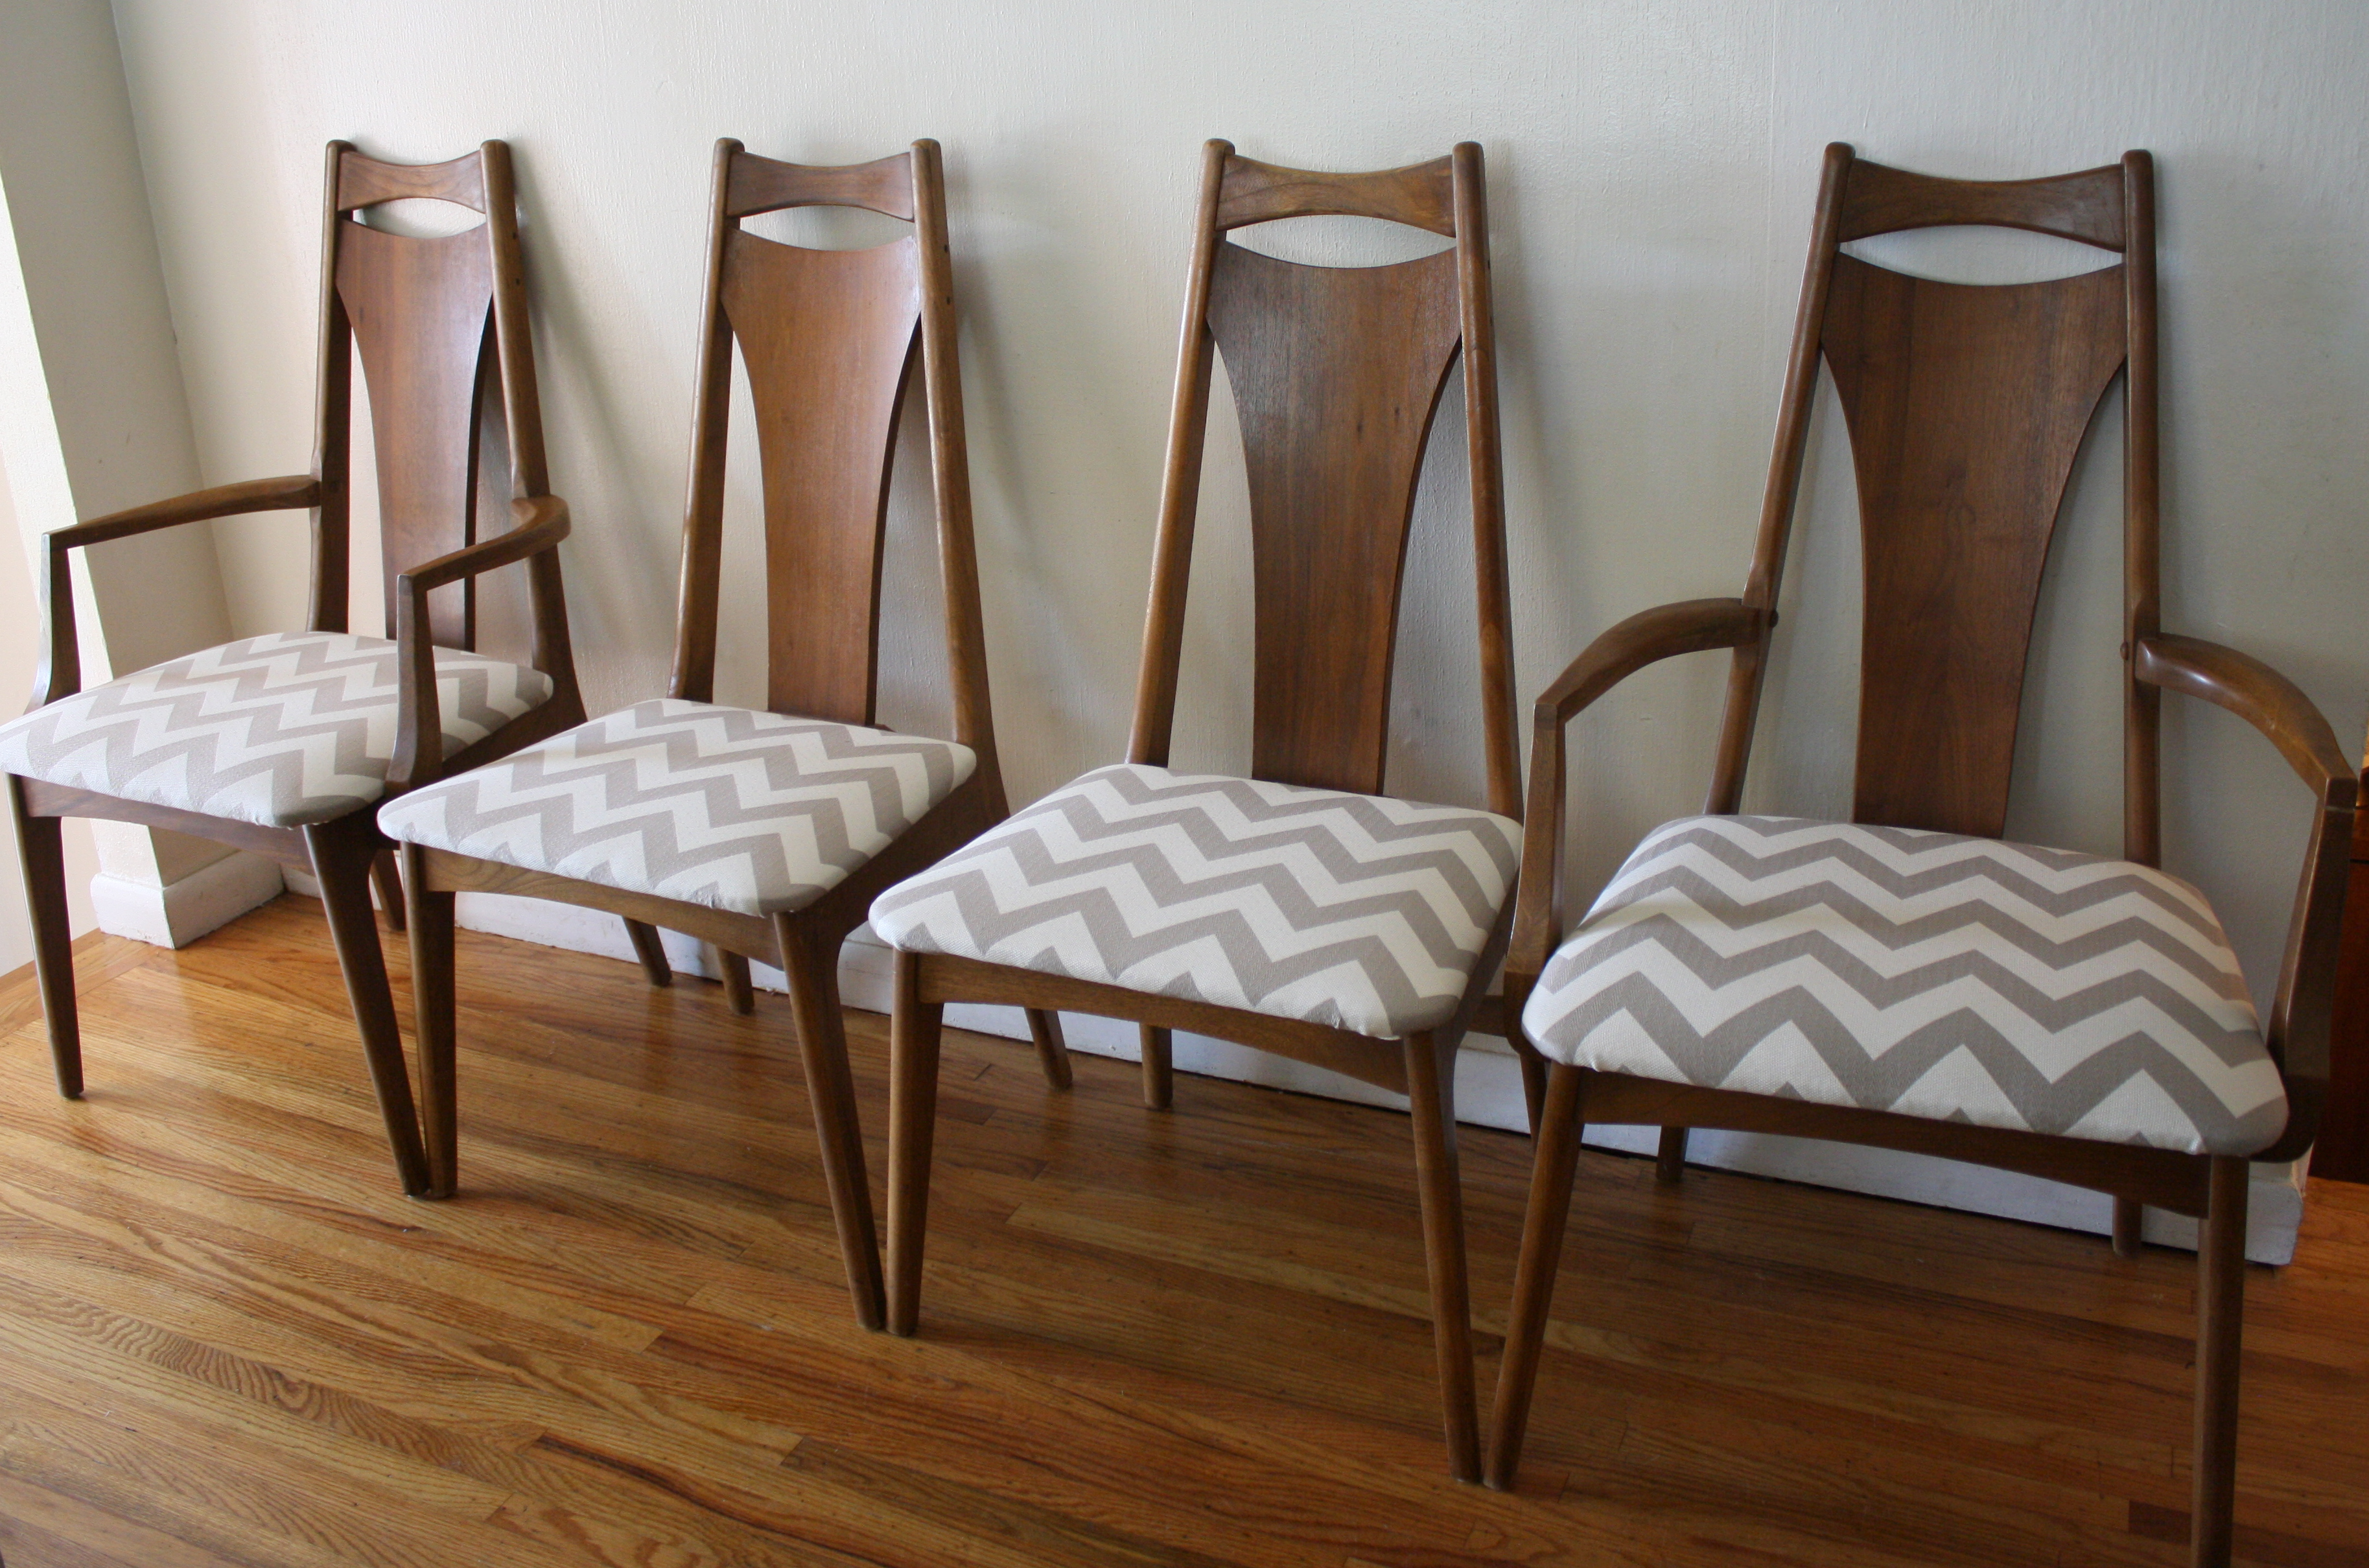 Mid Century Modern Sets of Dining Chairs